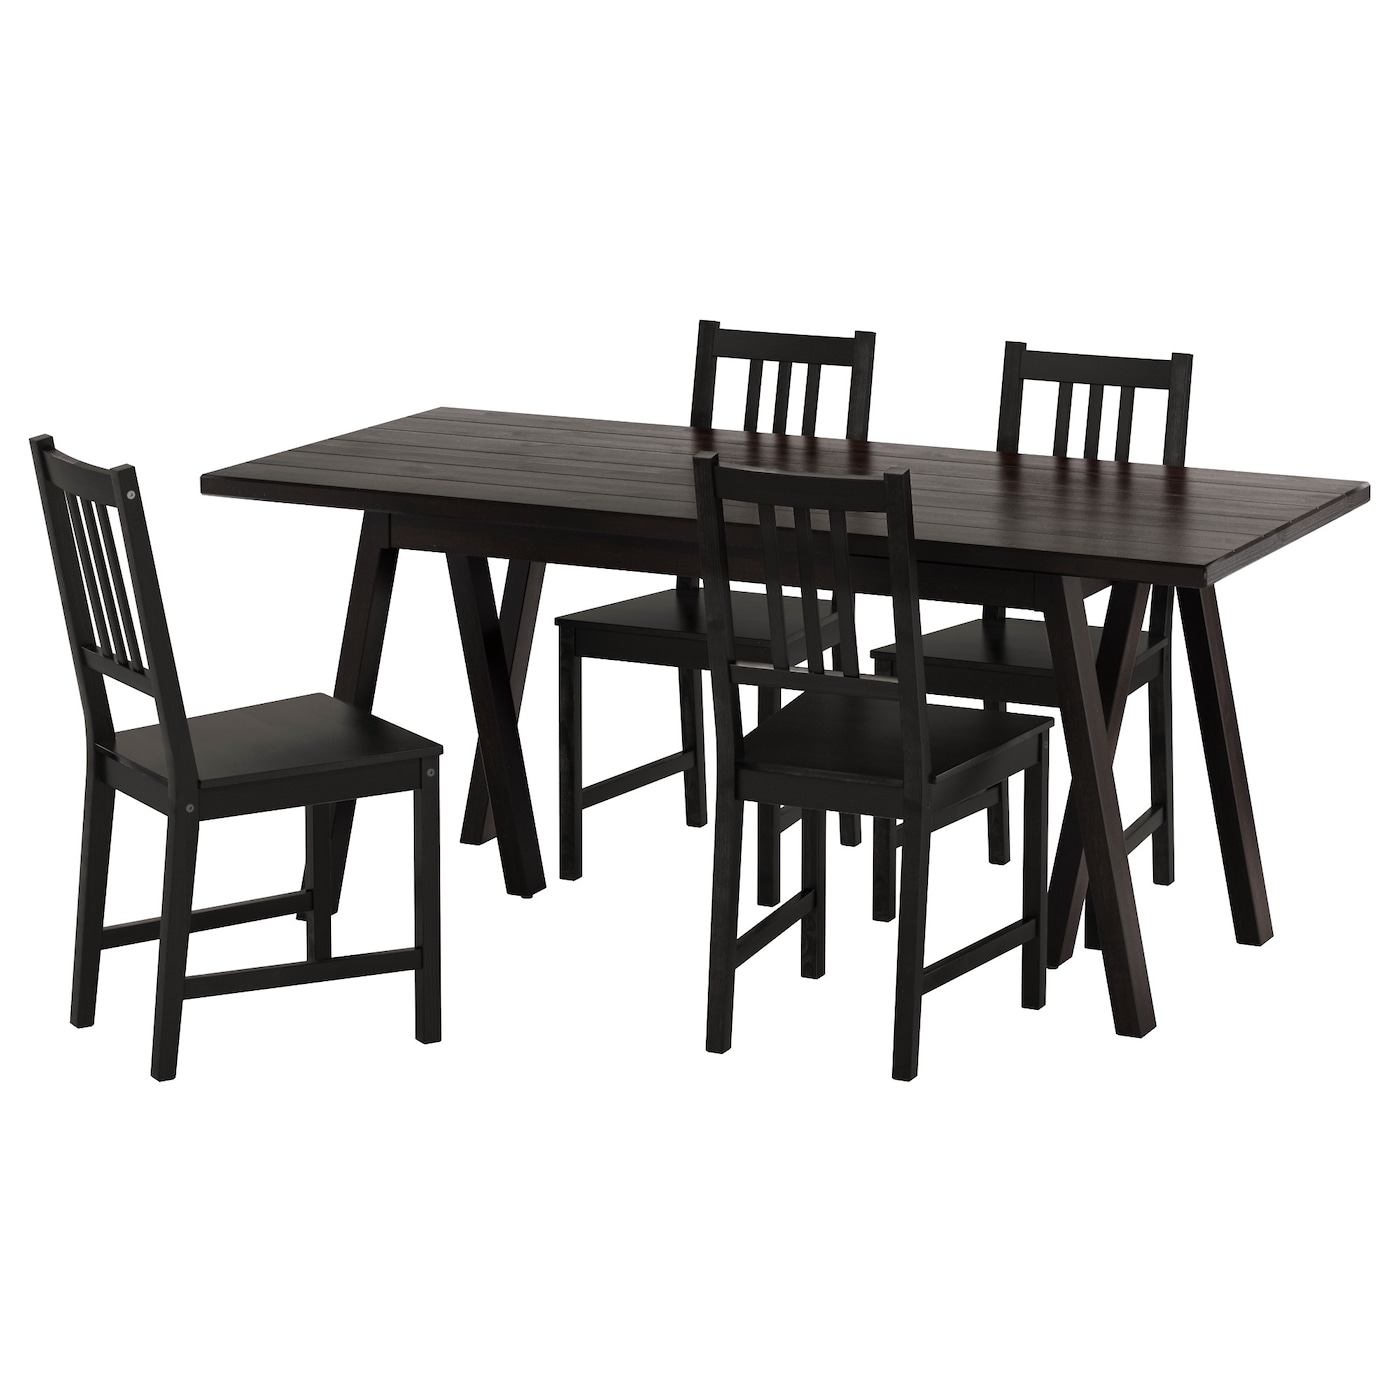 black furniture ikea. IKEA STEFANRYGGESTADGREBBESTAD Table And 4 Chairs Black Furniture Ikea